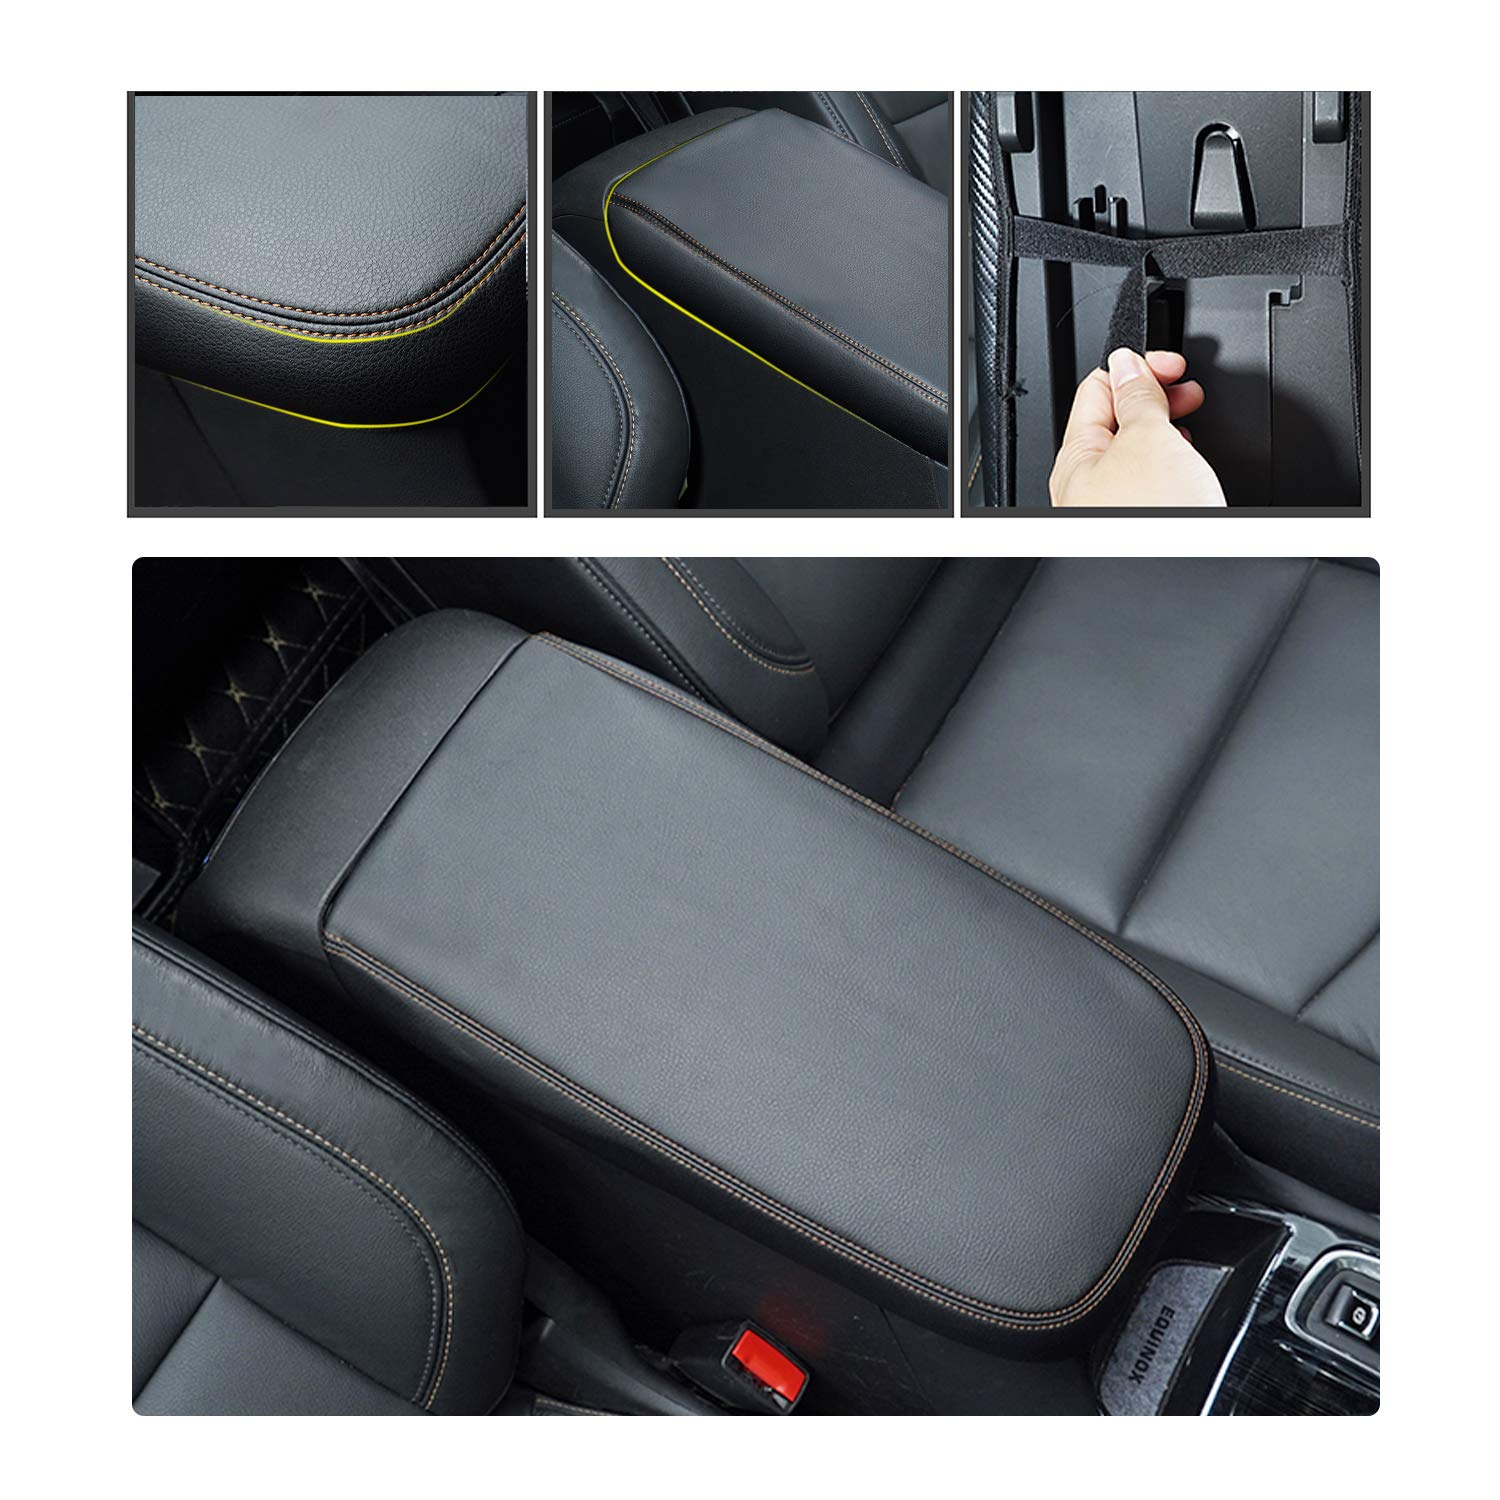 Armrest Cover with Carbon YEE PIN Car Center Armrest Cover Saver Console Lid Cover Fit for 2019 RAV 4 XA50 Center Console Armrest Box Scratch Resistance